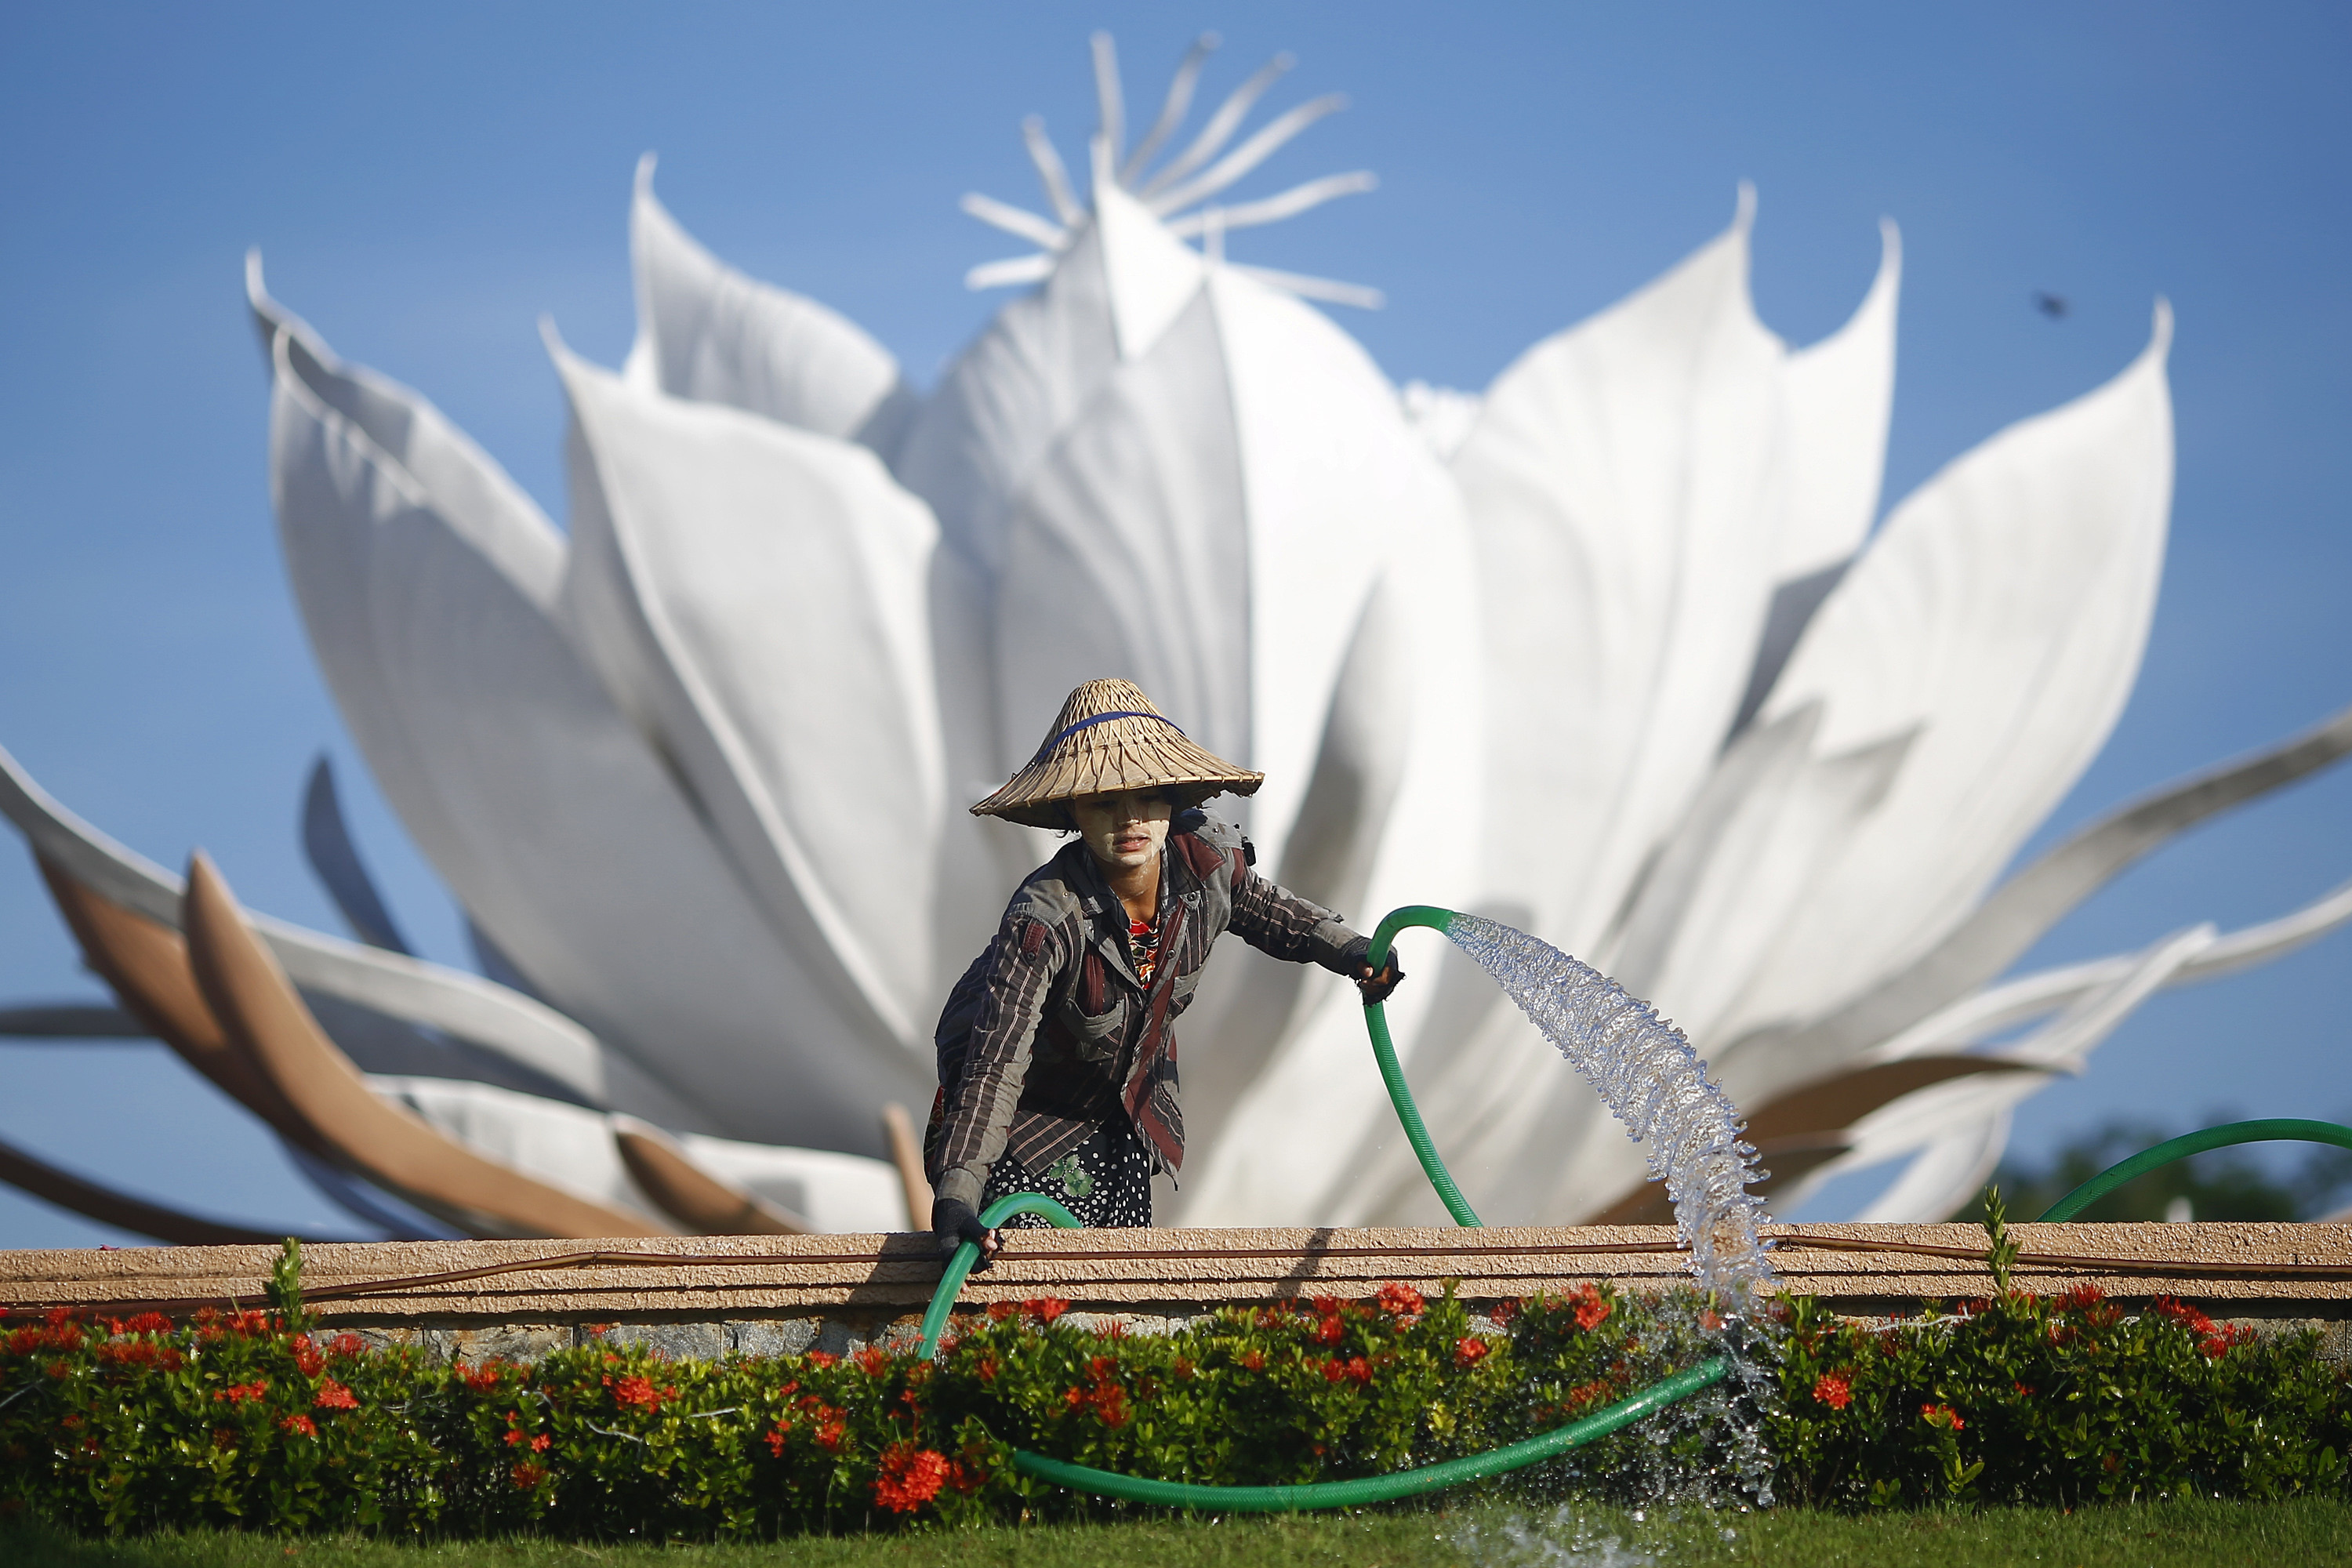 A female gardener waters flowers in Nay Pyi Taw, Myanmar.